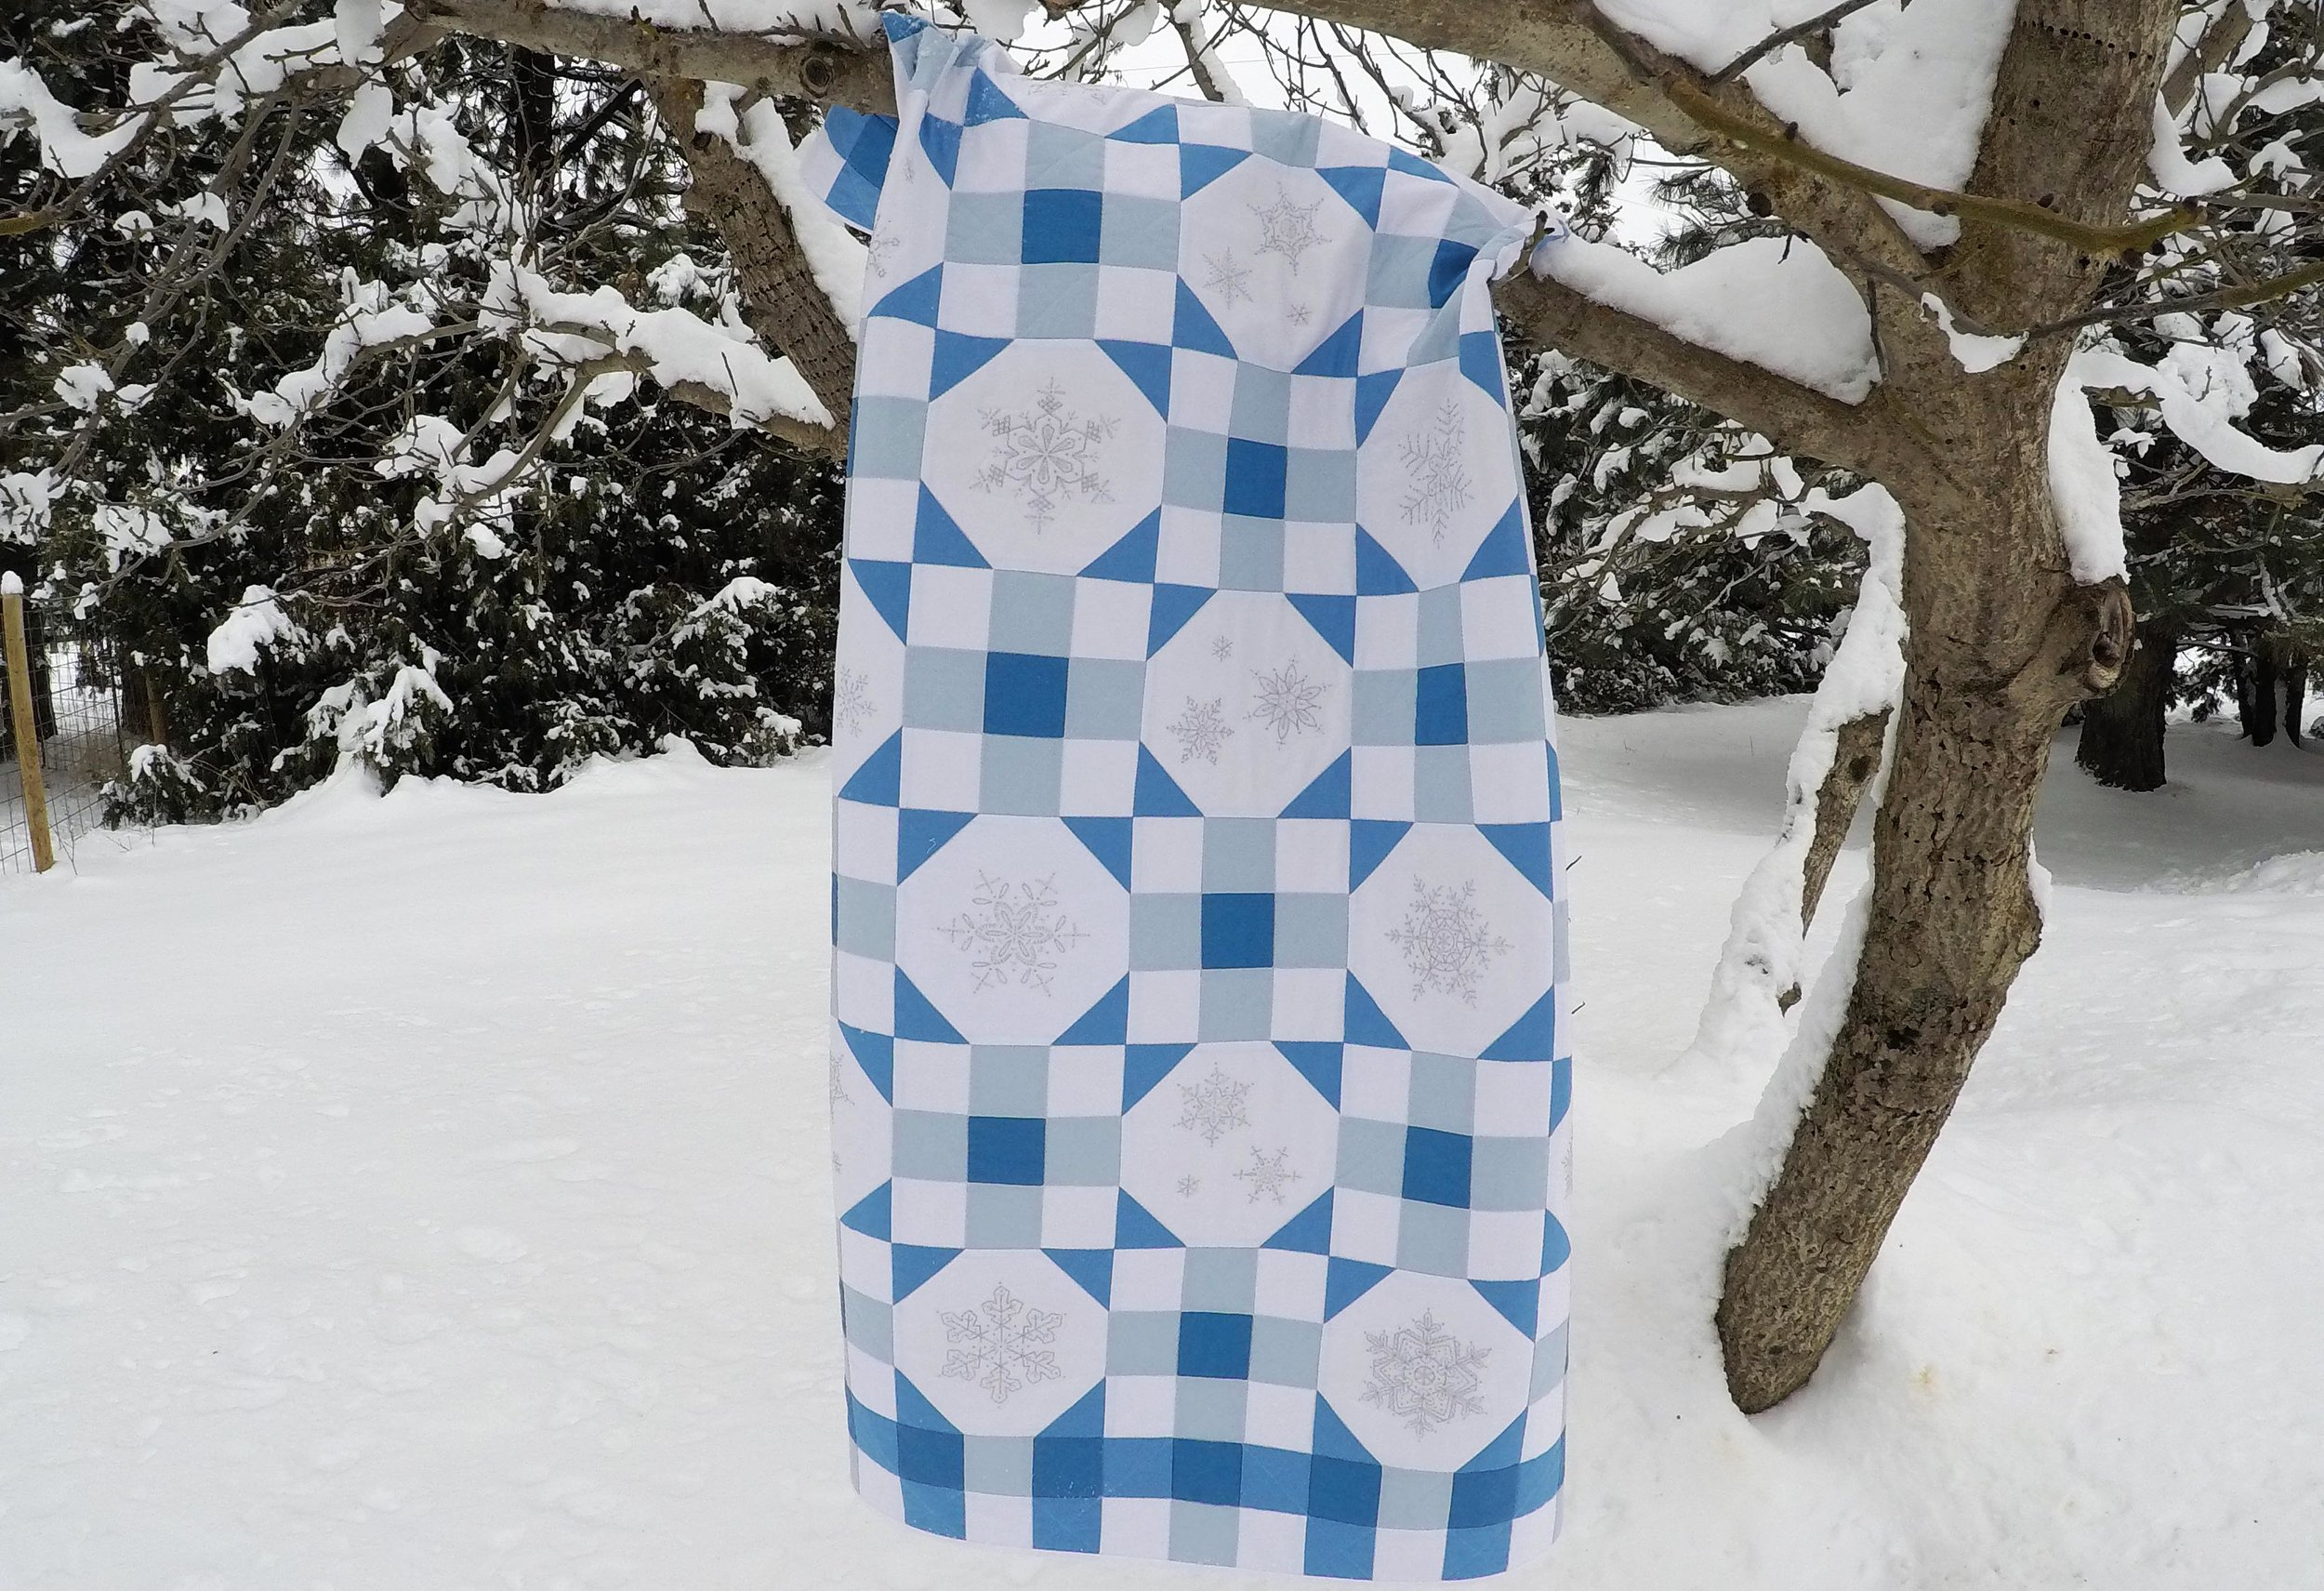 Falling Snow quilt pattern with embroidered snowflakes.